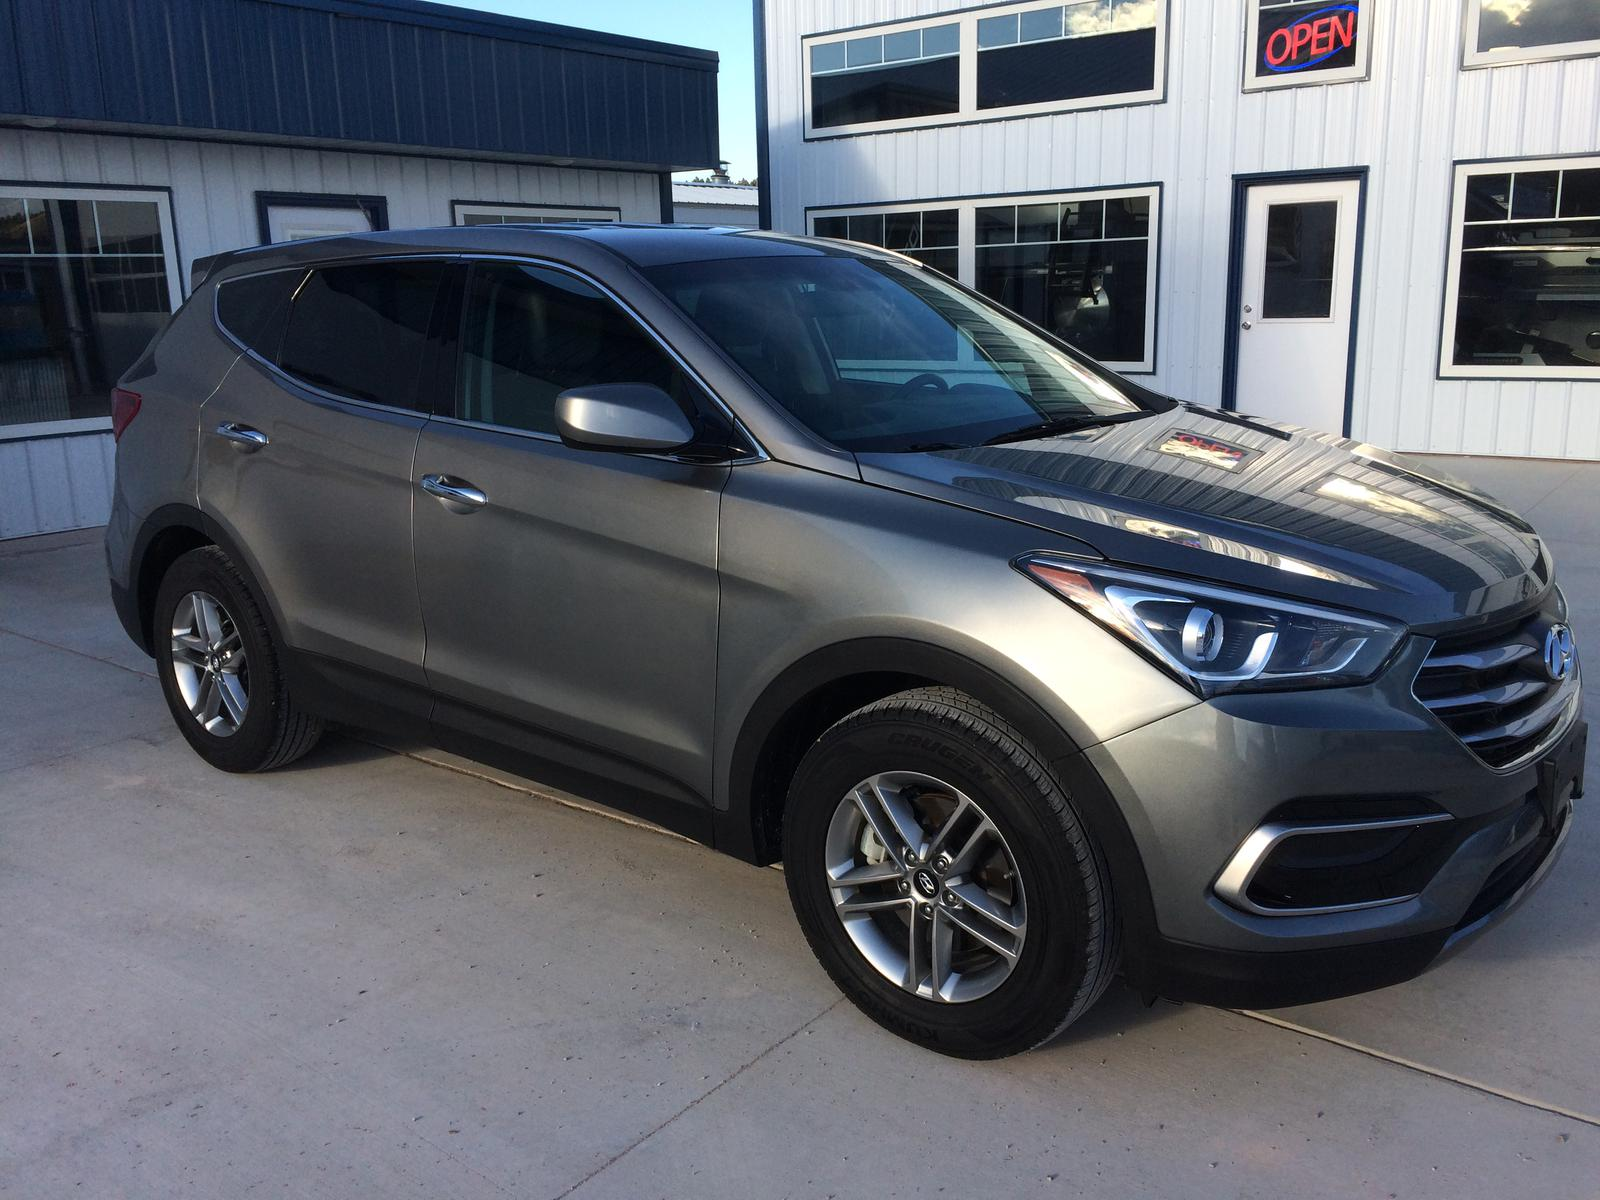 hyundai santa fe sport black 2018 hyundai santa fe sport for sale in black hawk  sd interstate 2017 hyundai santa fe sport black 2018 hyundai santa fe sport for sale in